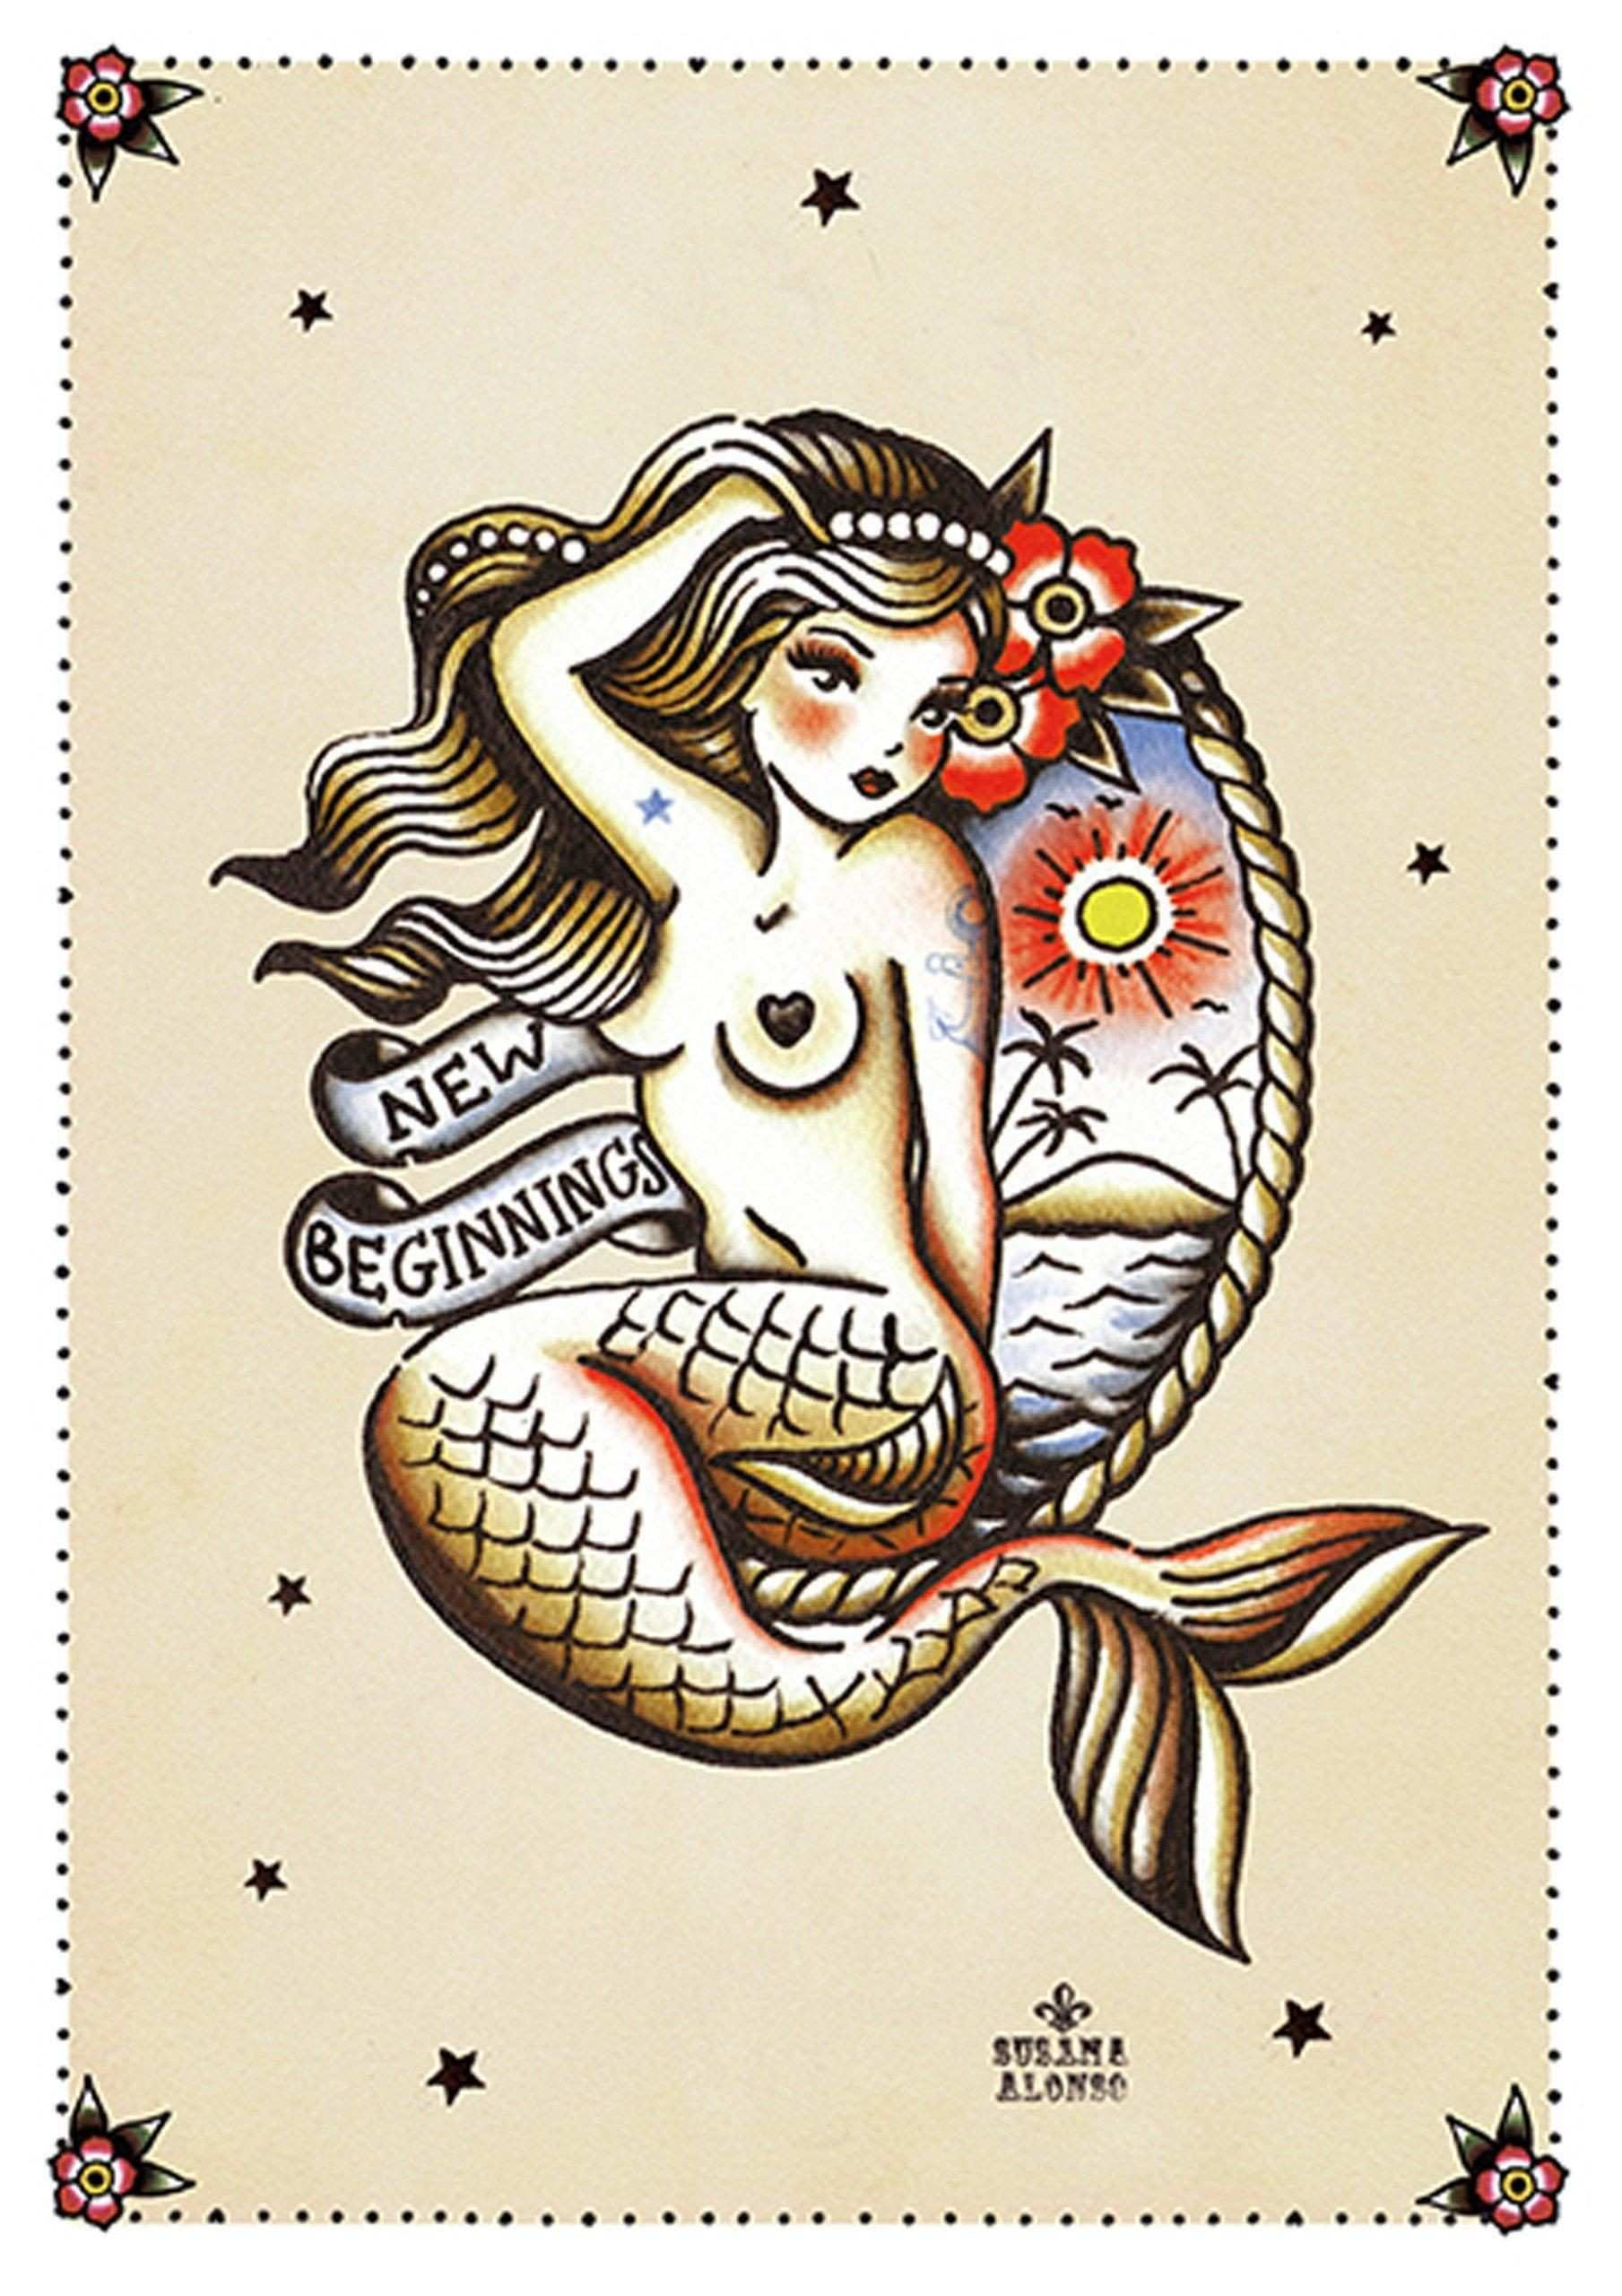 New Beginnings by Susana Alonso Pin Up Mermaid Tattoo Canvas Art